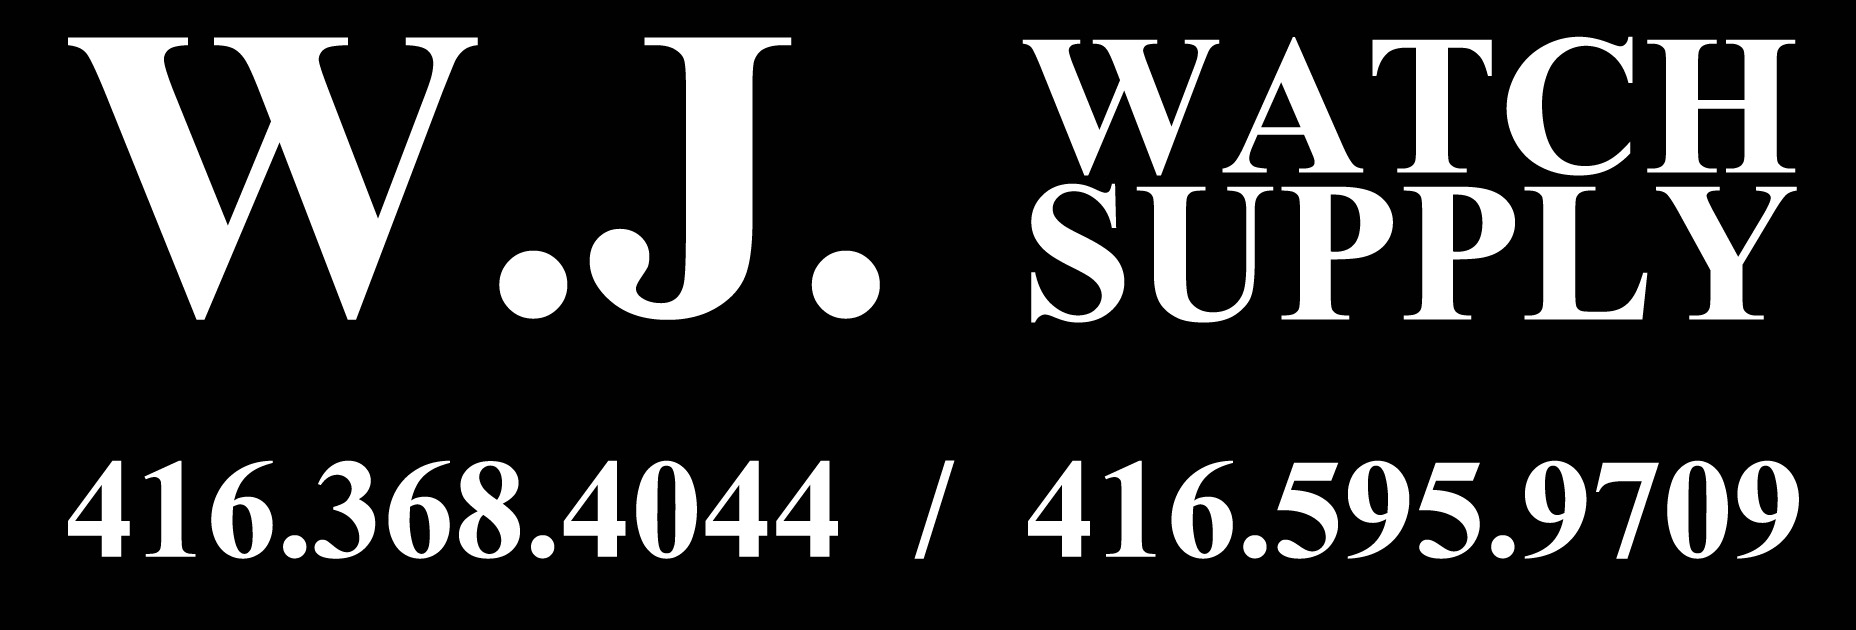 W.J Watch Supply